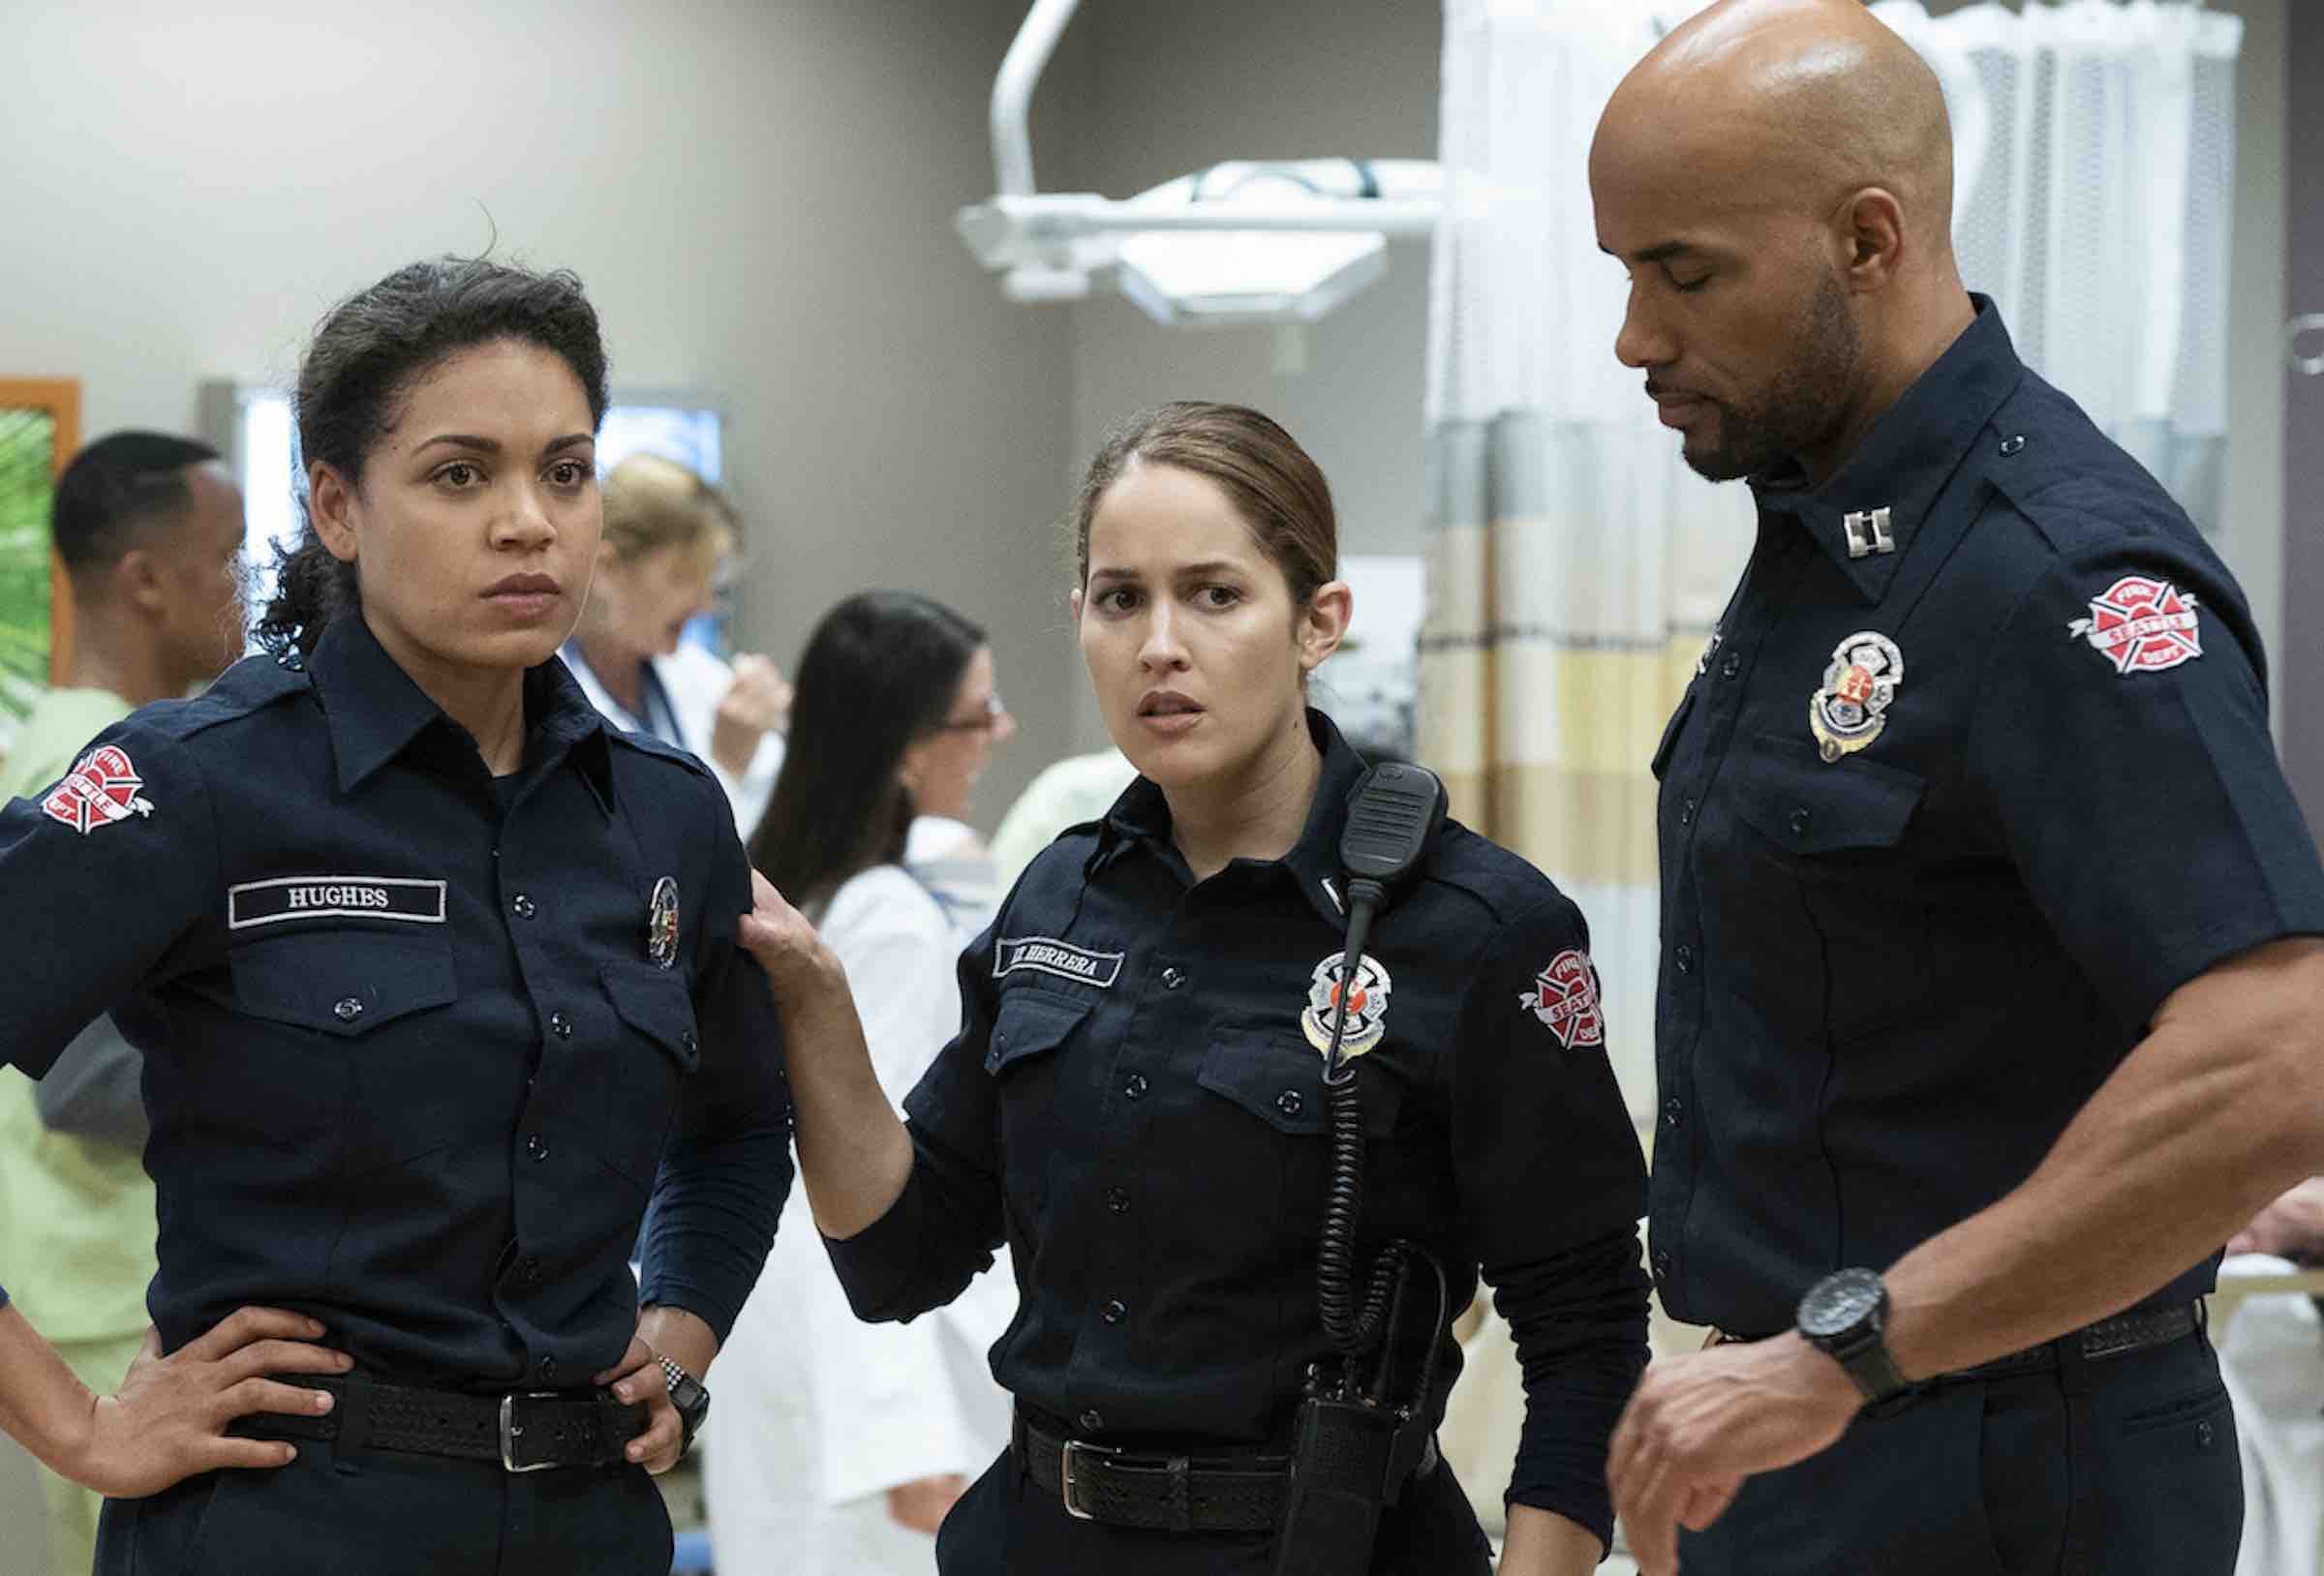 Ready for 'Station 19' season 3? Read this recap first